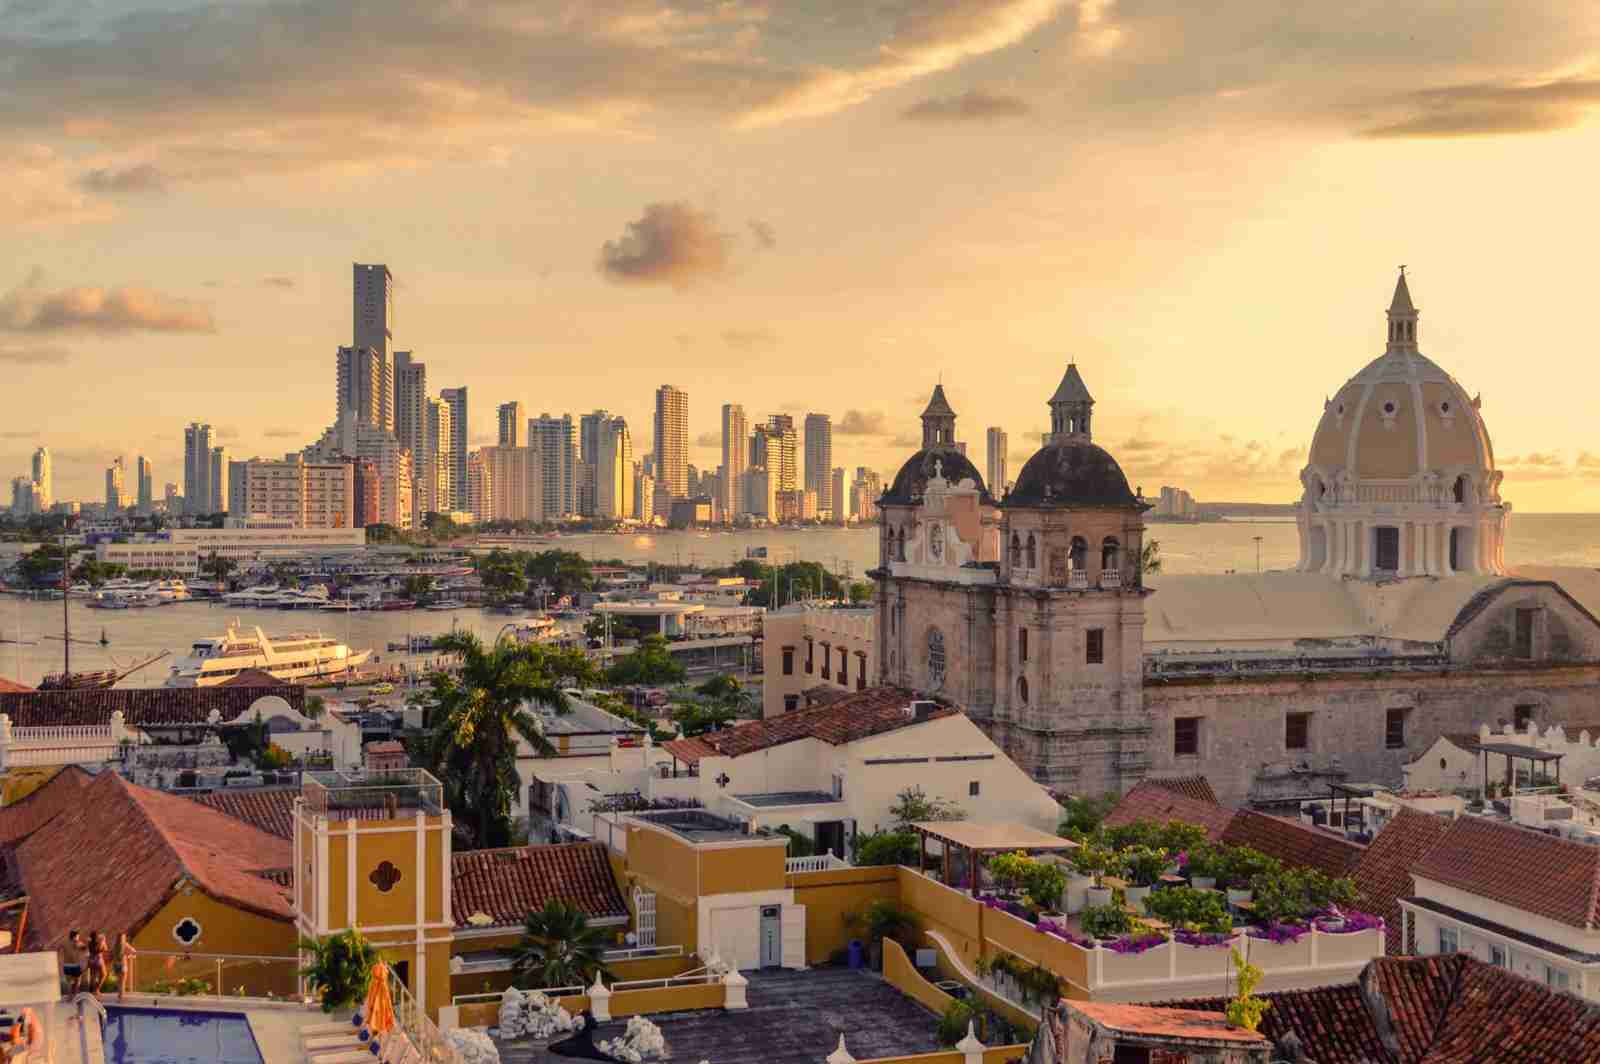 Cartagena, Colombia. (Photo by Starcevic/Getty Images)